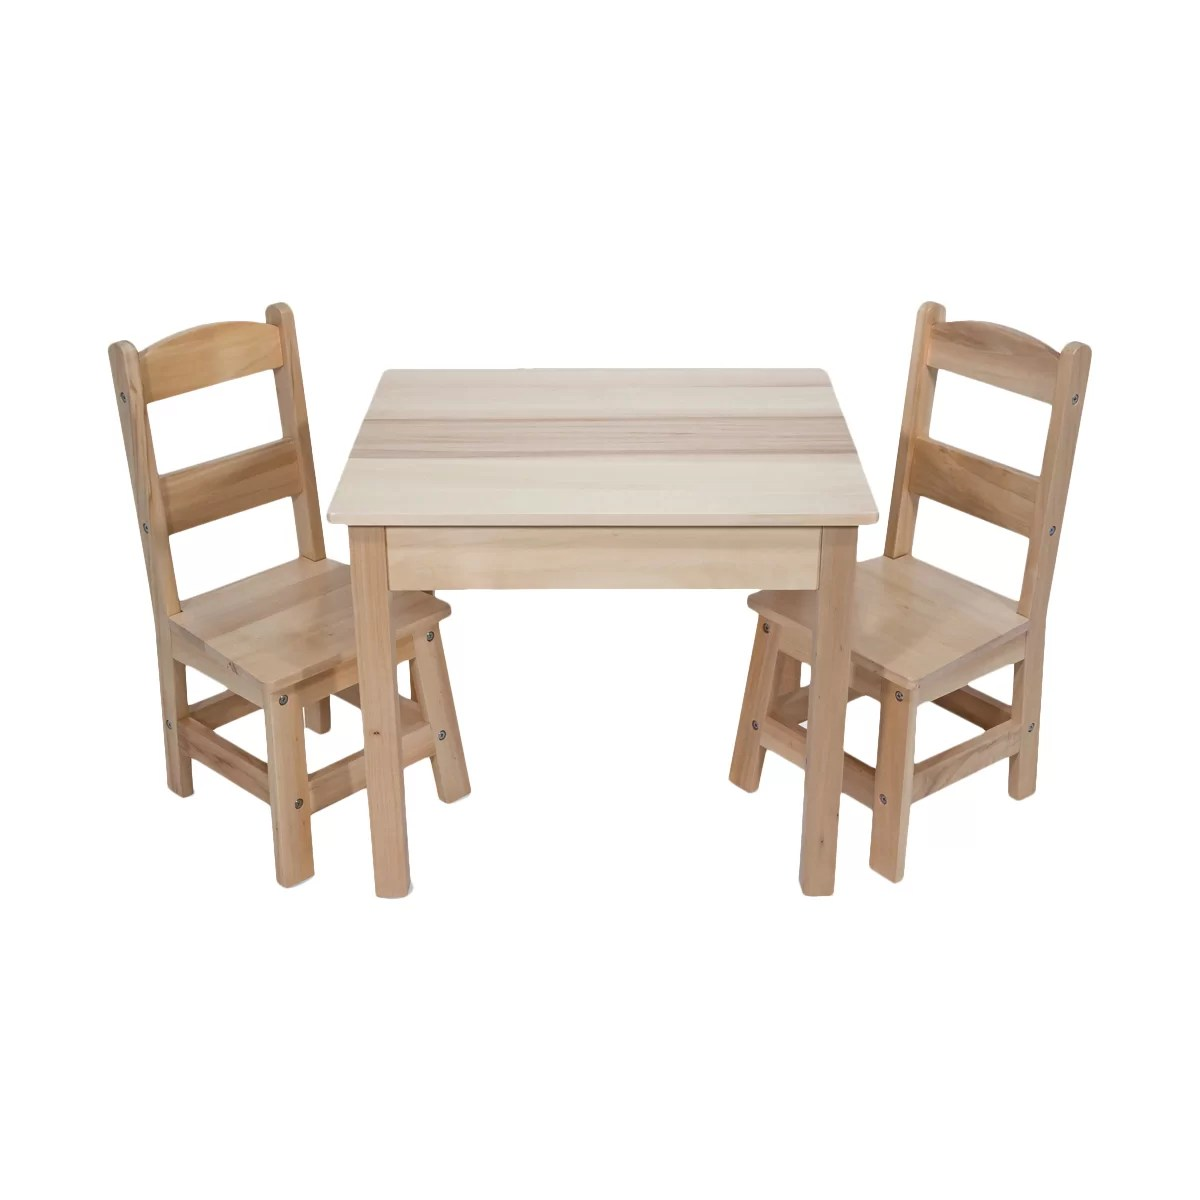 Melissa And Doug Table And Chairs Melissa And Doug 3 Piece Wooden Table And Chairs Set